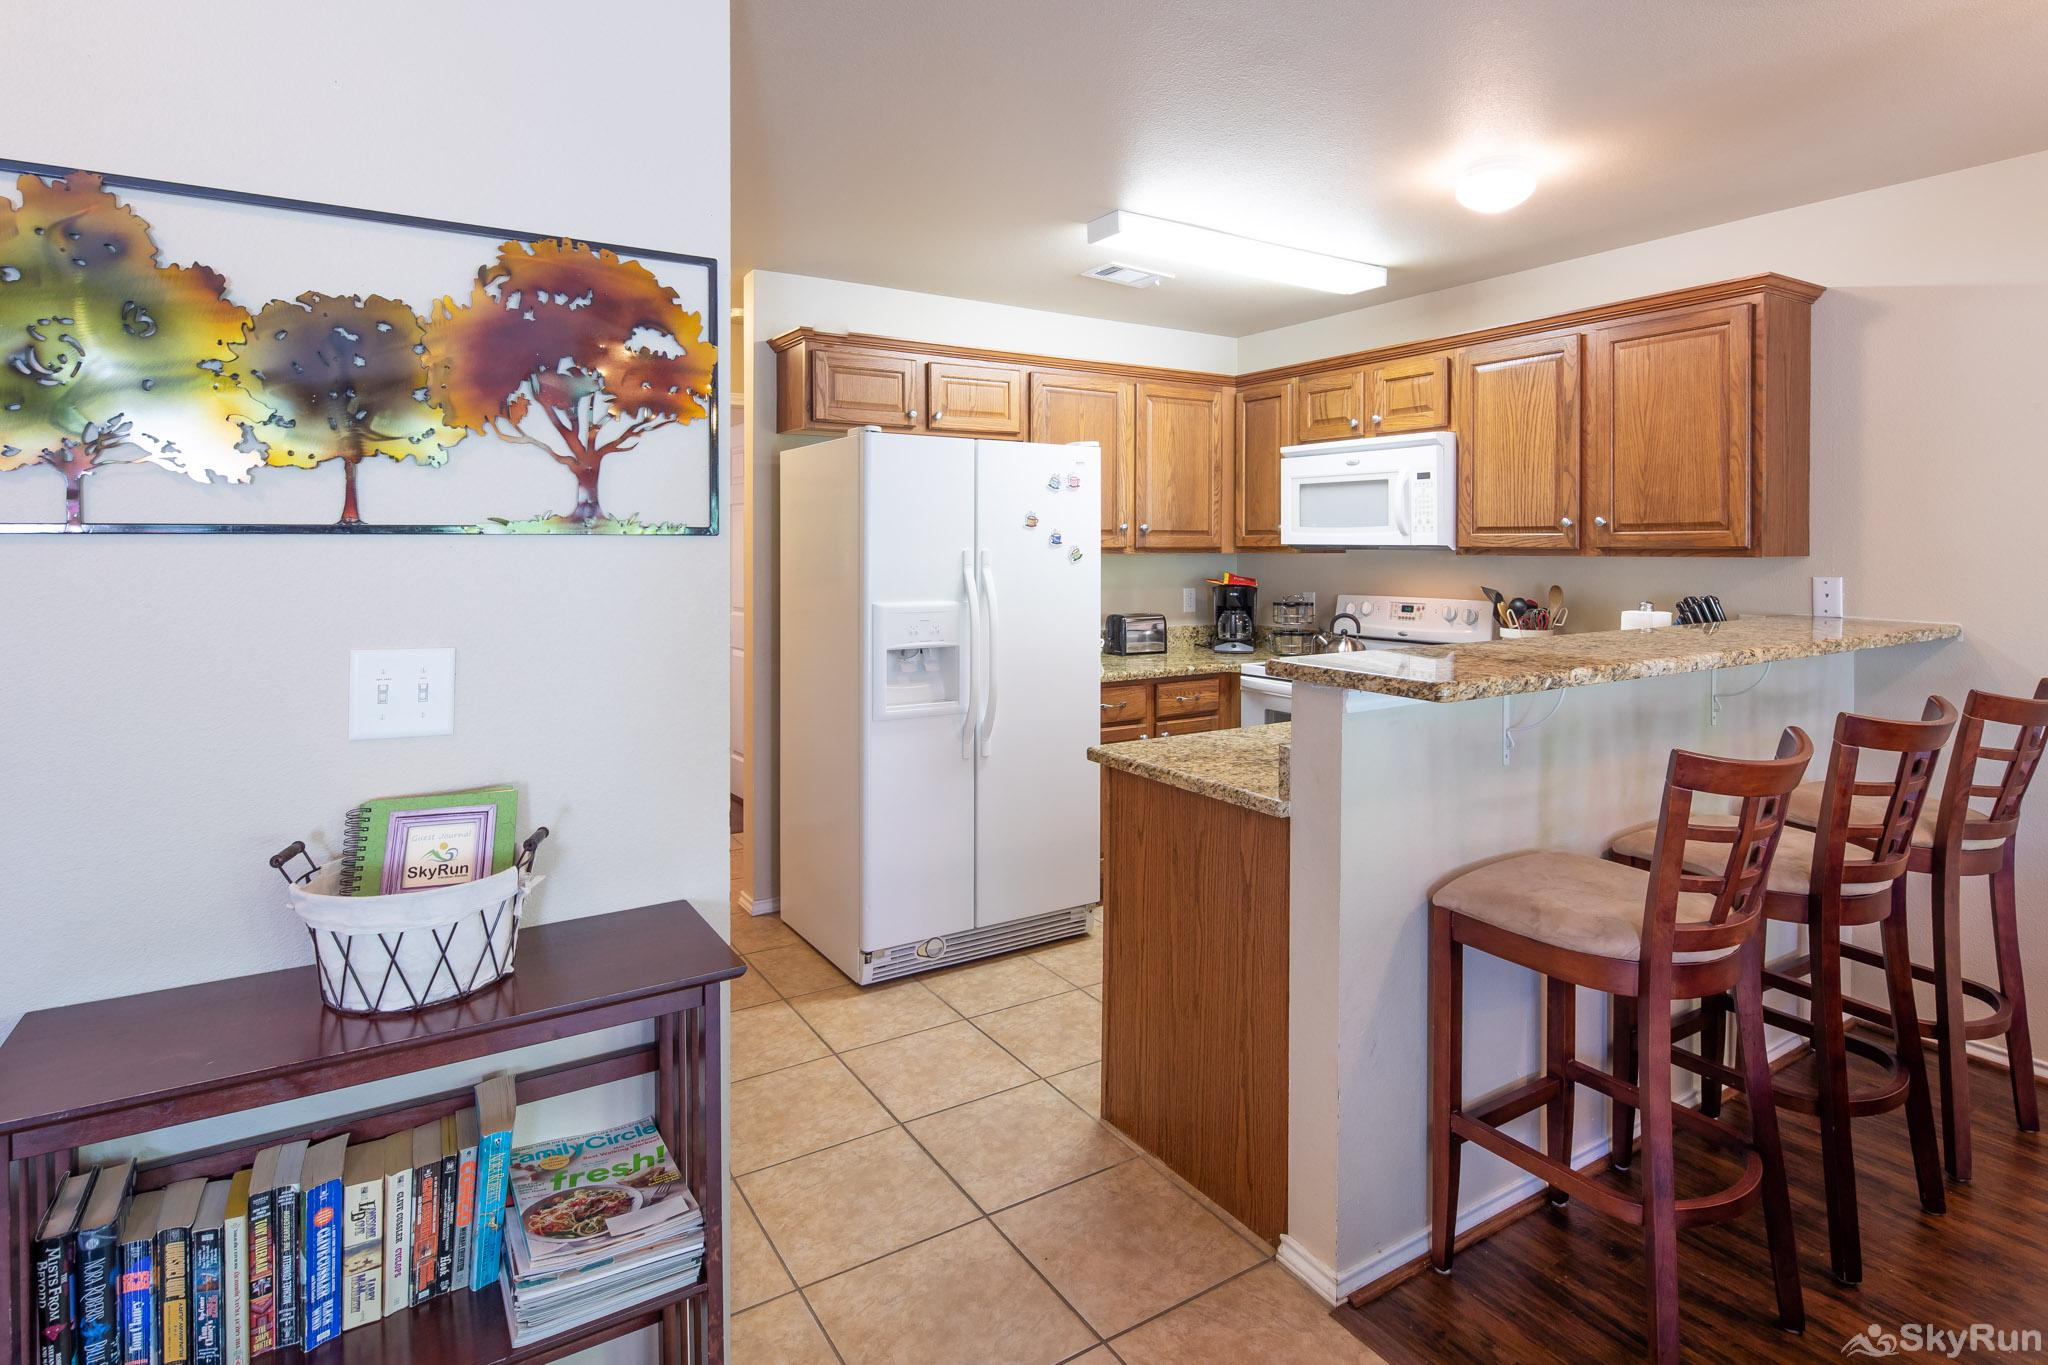 WATERWHEEL TREEHOUSE CONDO Kitchen equipped with all cooking and dining essentials